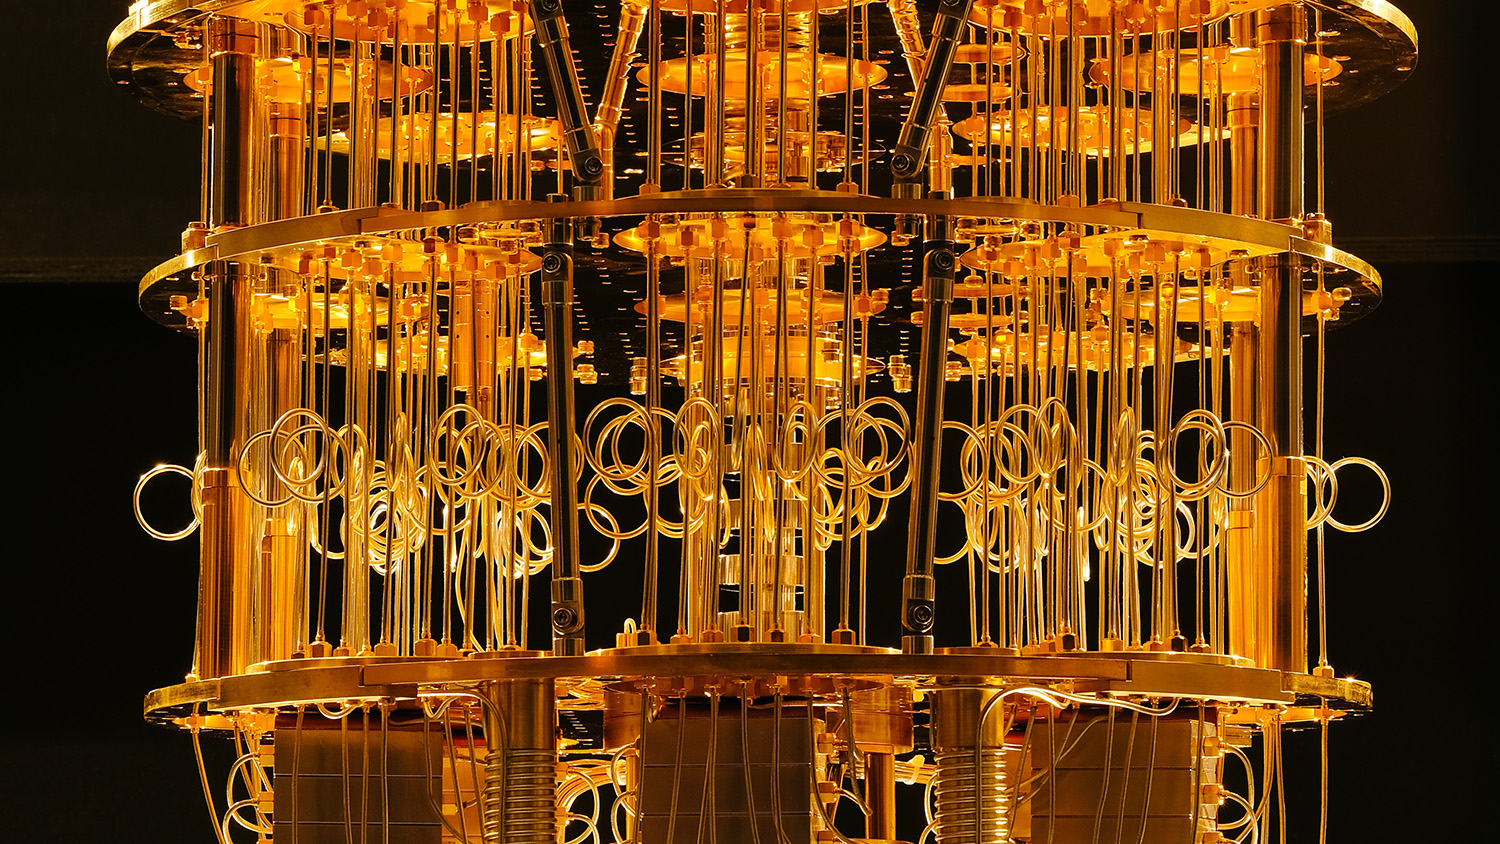 The workings of part of a quantum computer.